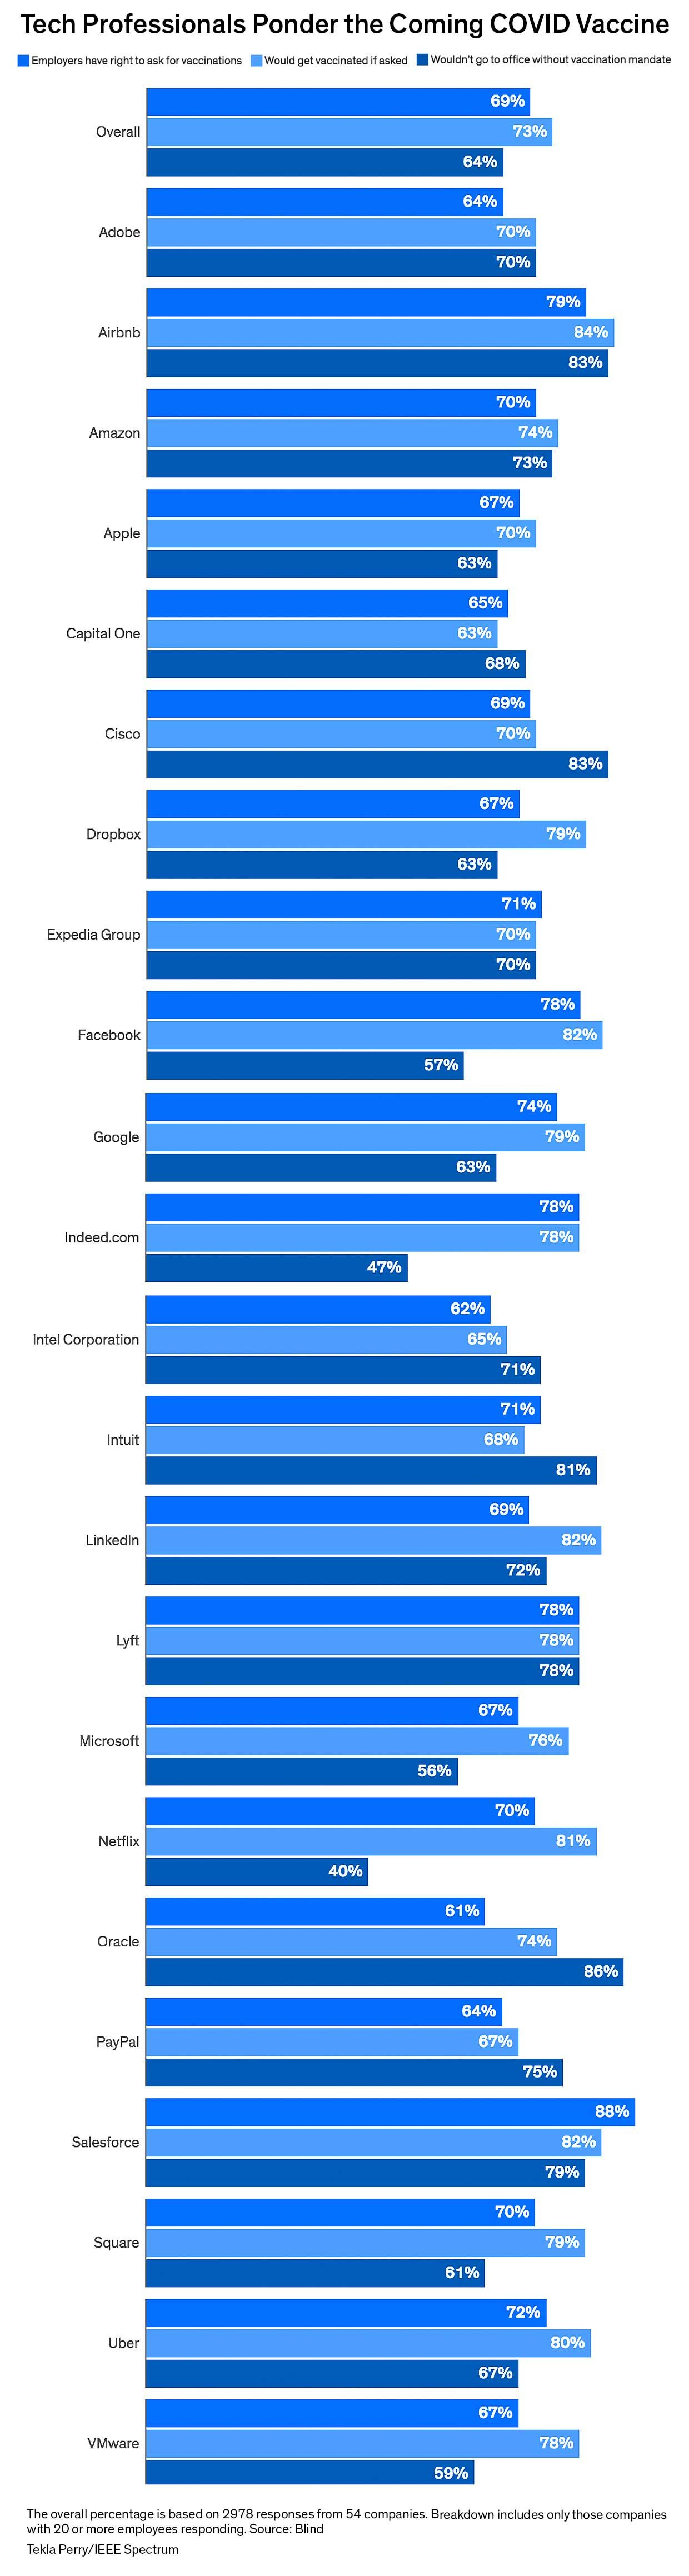 Survey results of tech professionals about a return to office after the vaccine